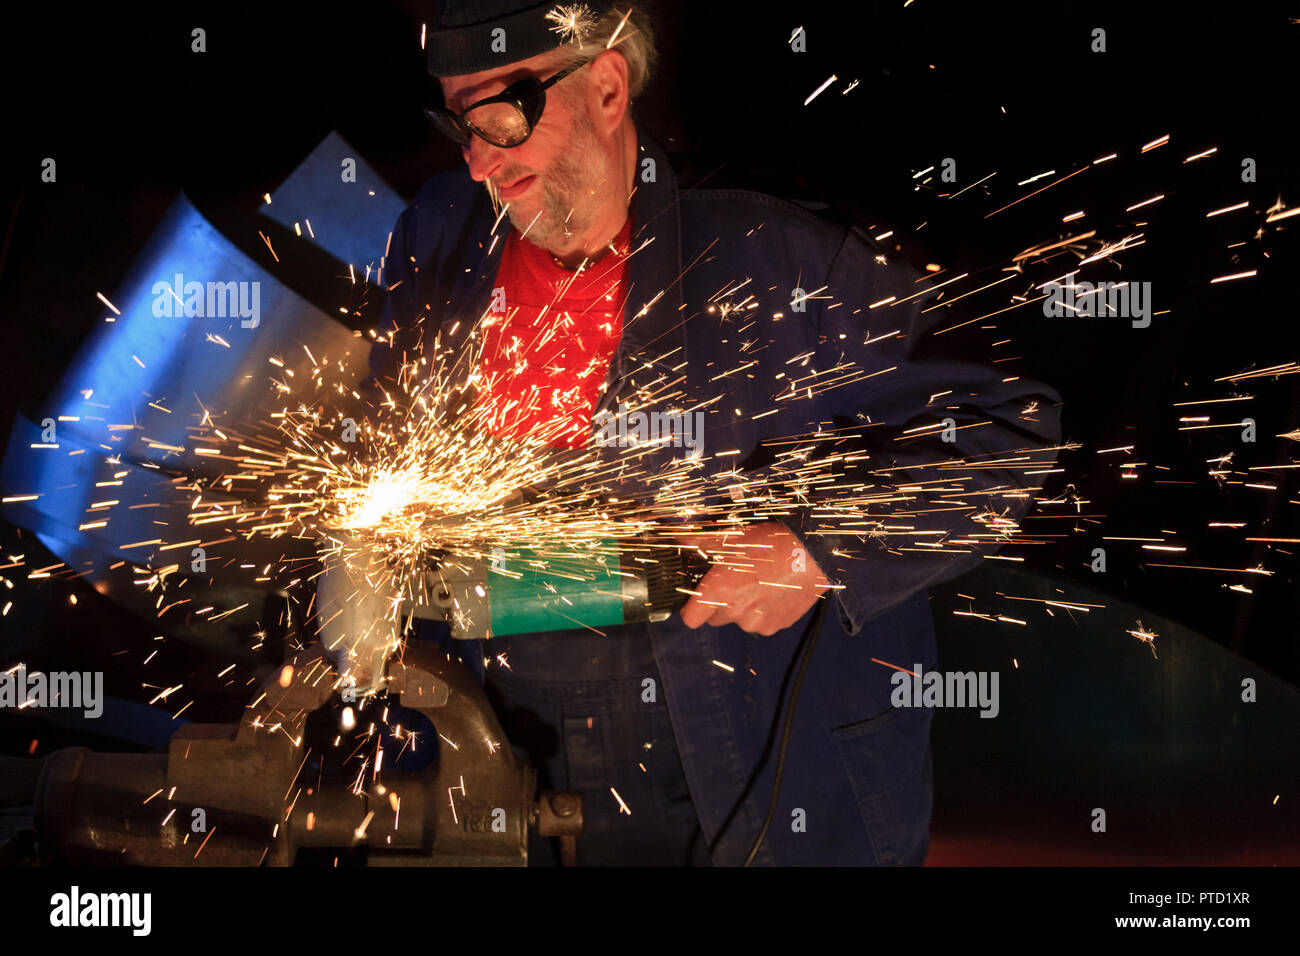 A man, craftsman works with an angle grinder, flex, flying sparks, Germany - Stock Image